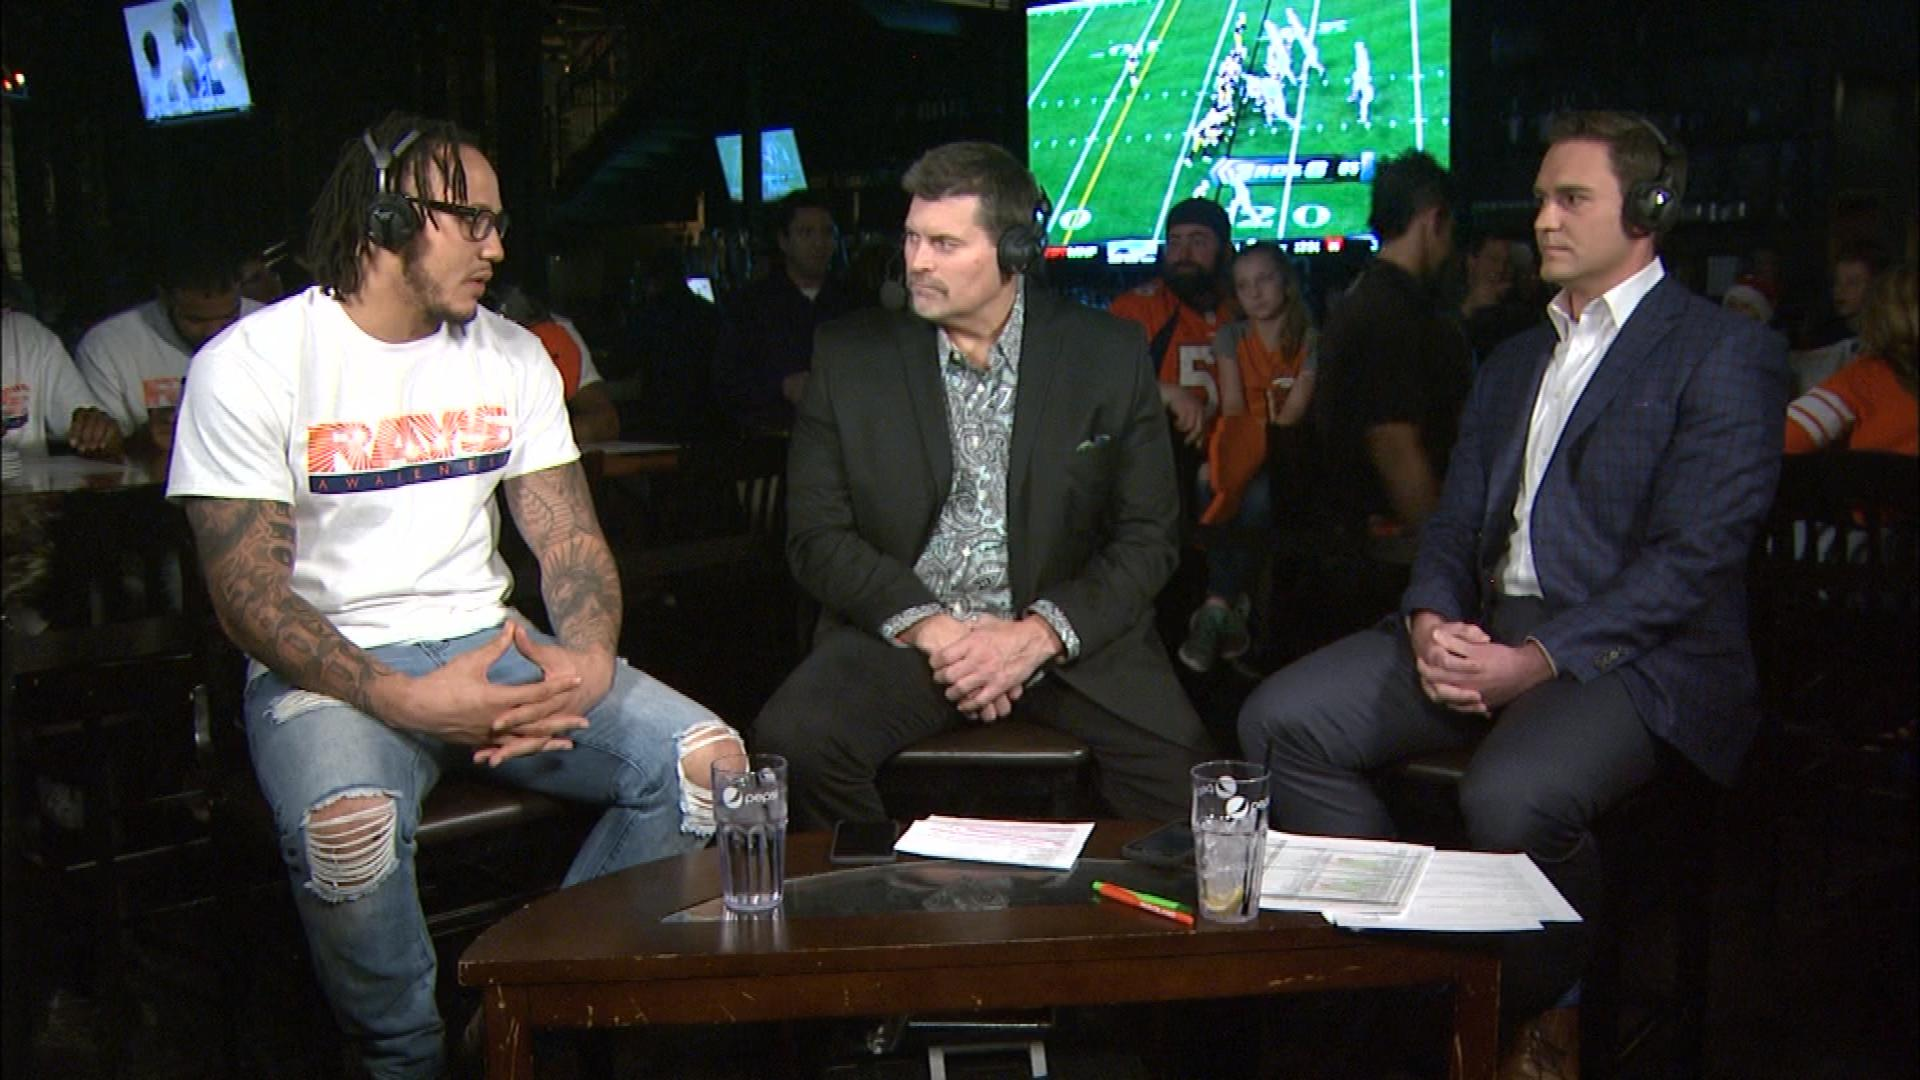 Shane Ray on Xfinity Monday Live with CBS4's Mark Schlereth and Michael Spencer (credit: CBS)